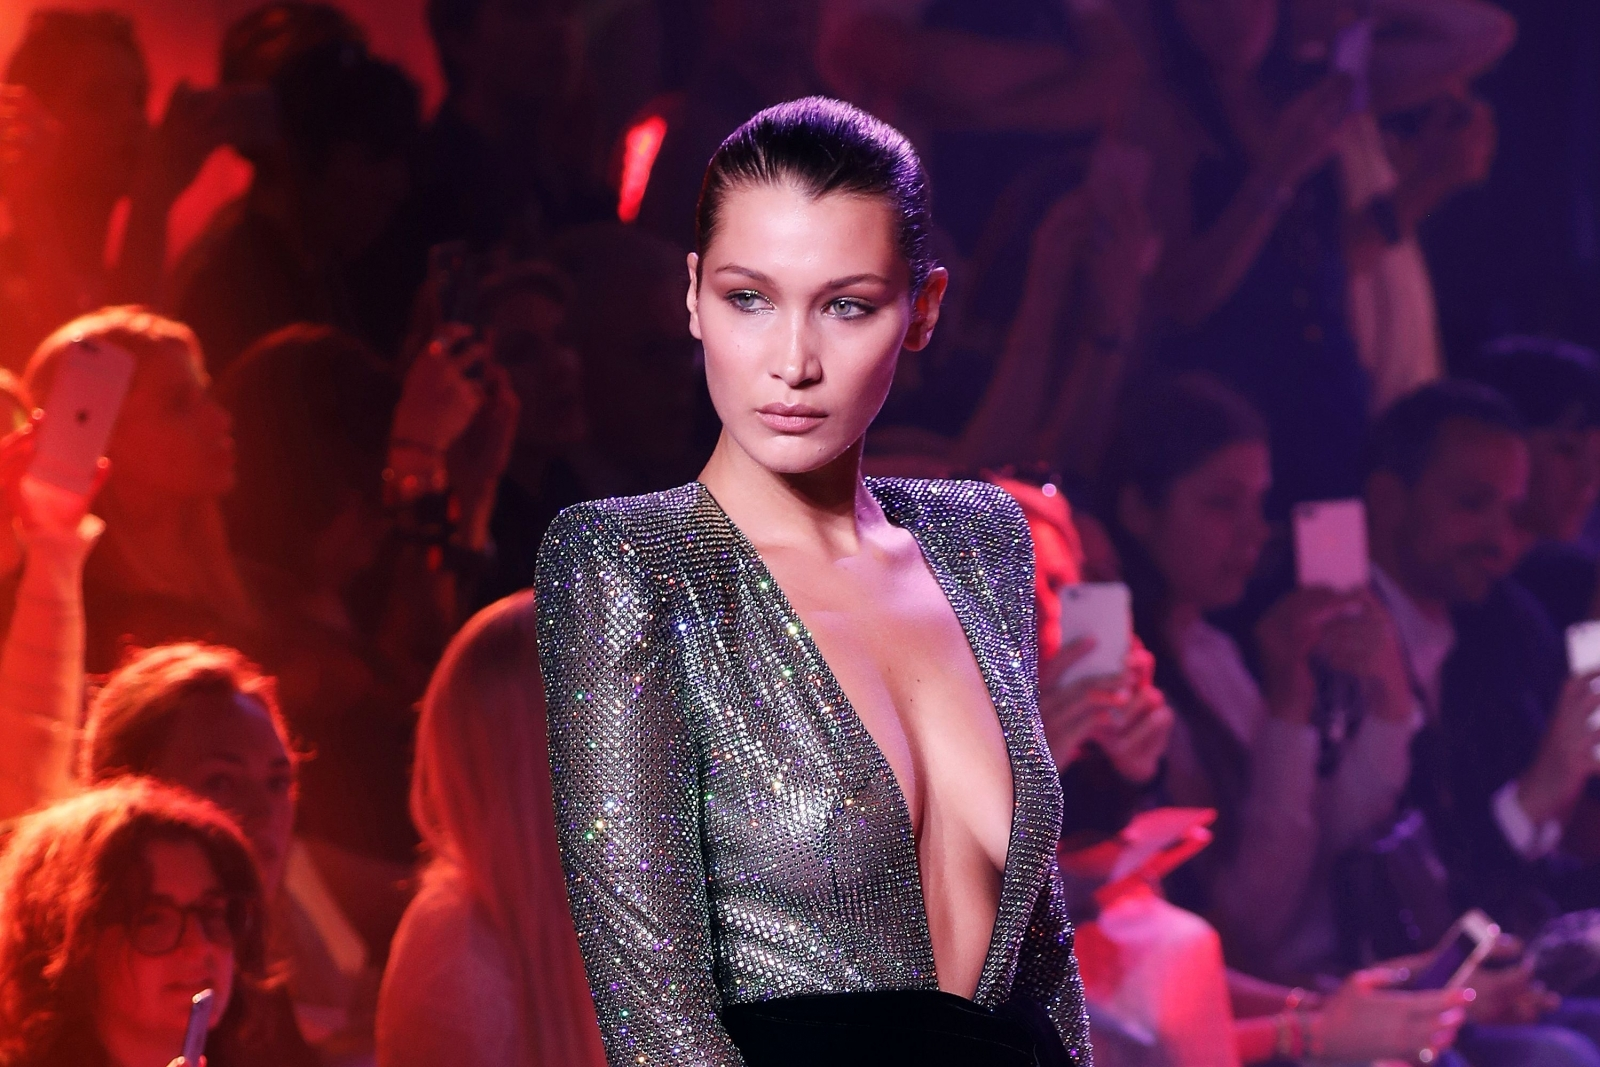 Bella Hadid Goes Braless And Flaunts Her New Haircut In